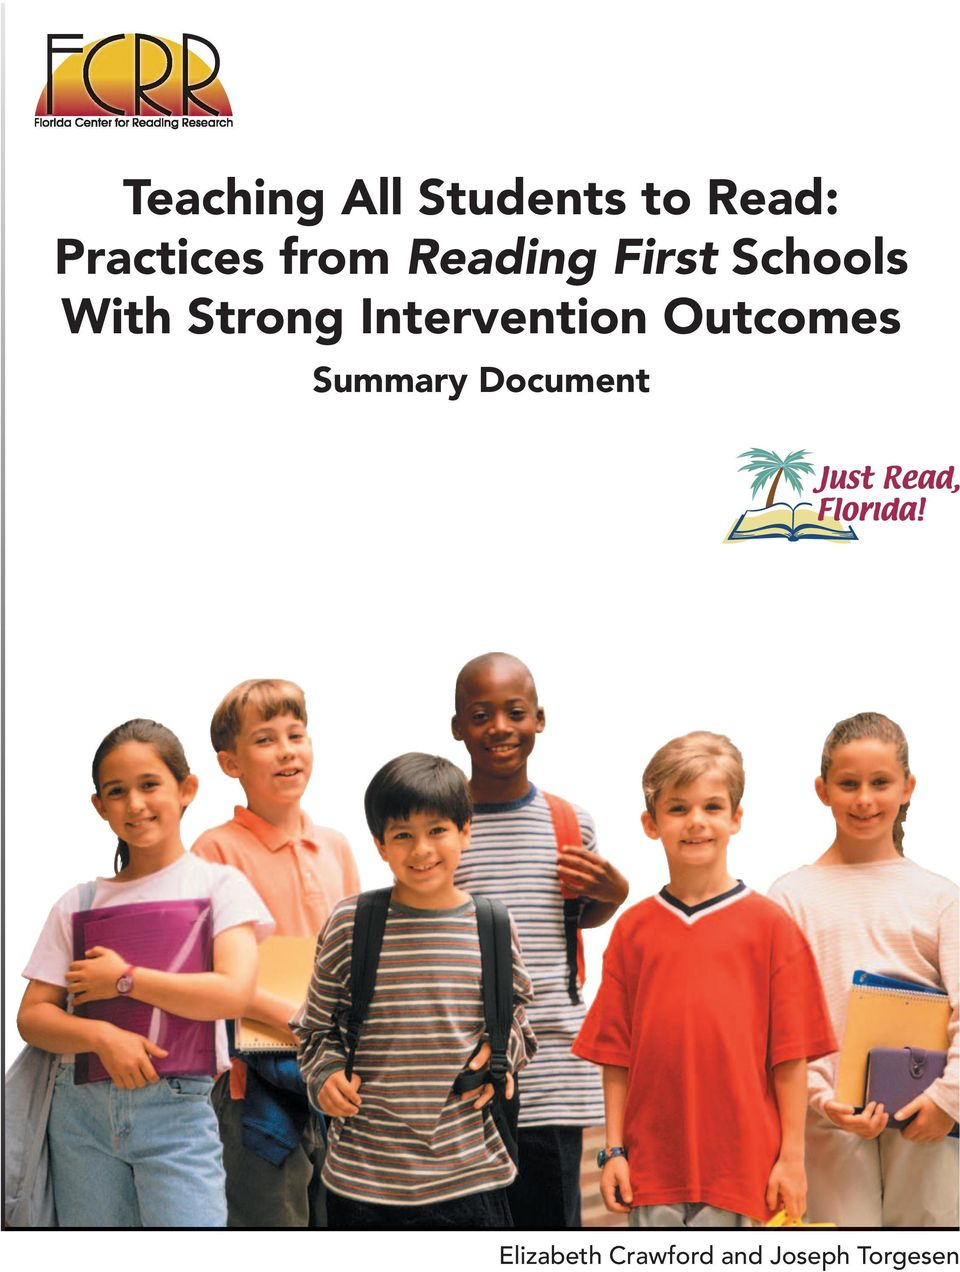 With Strong Intervention Outcomes